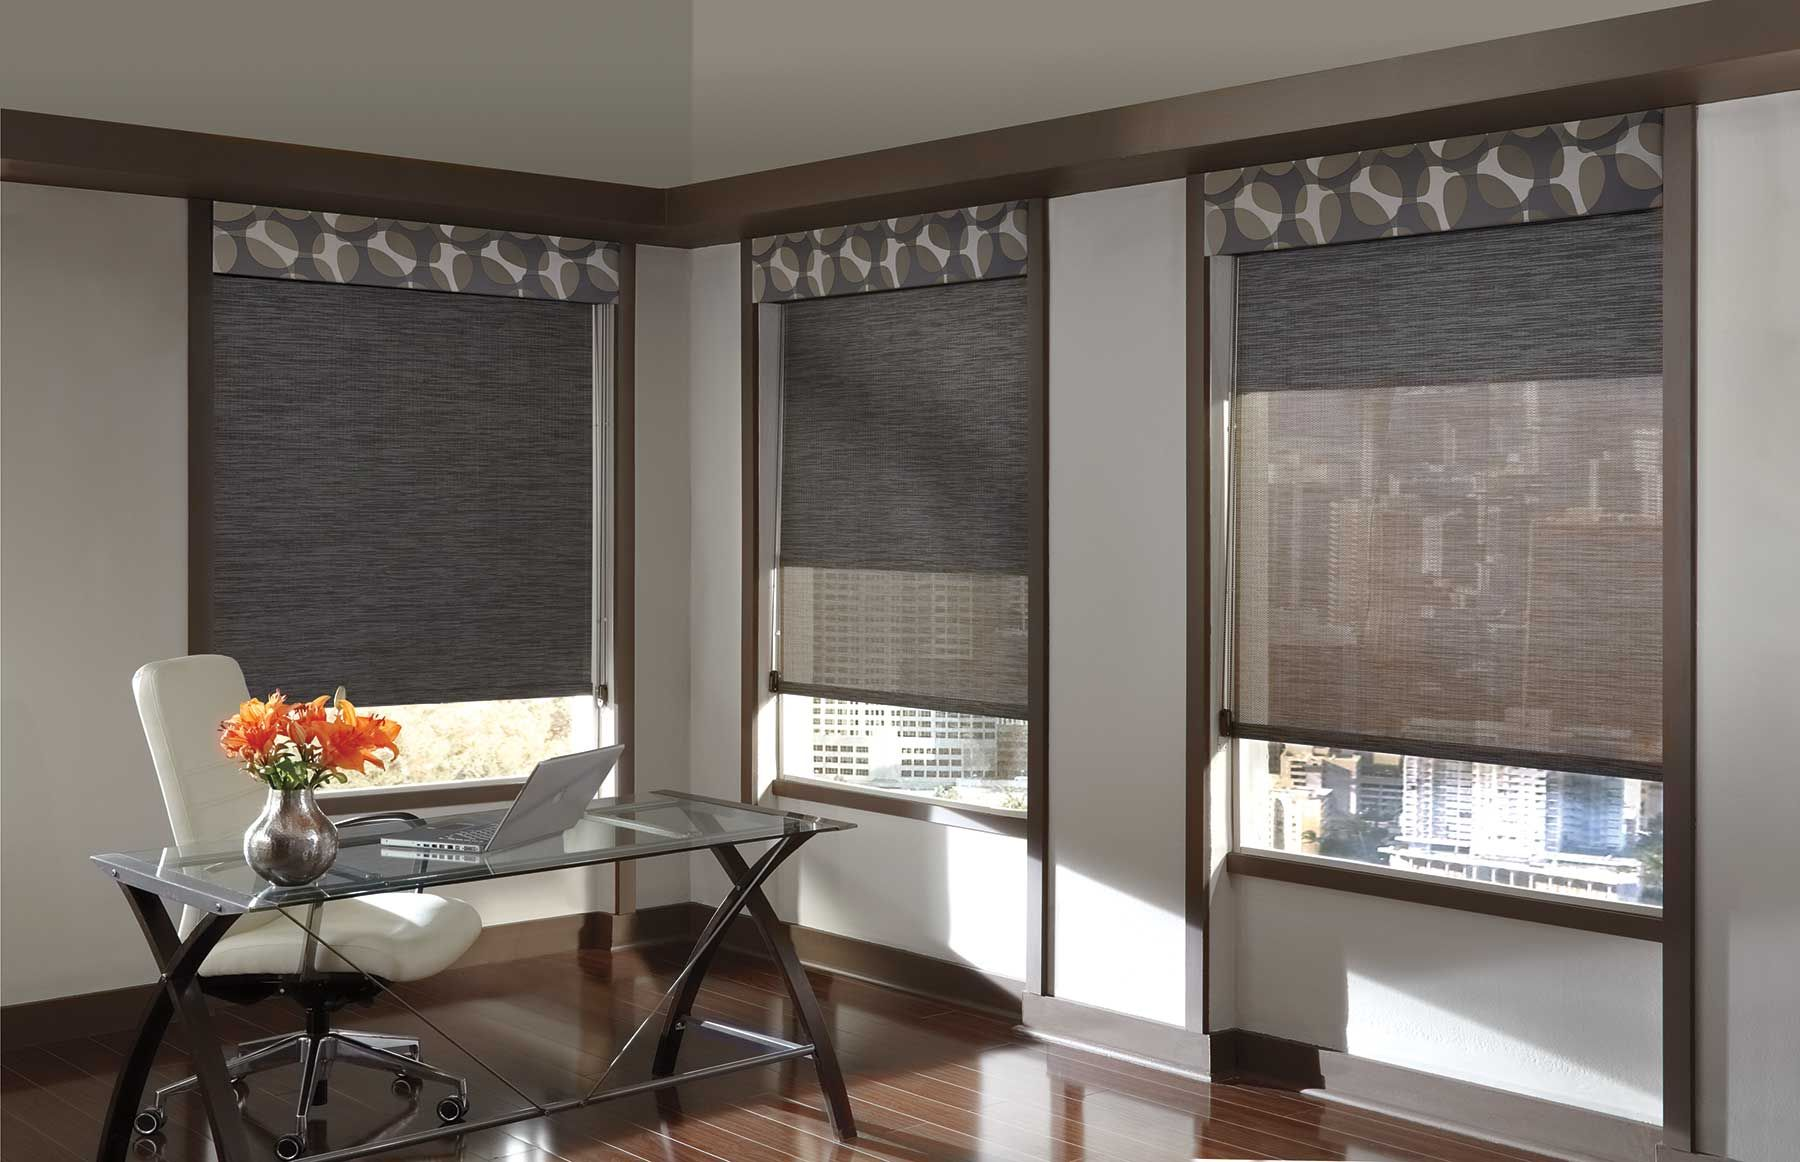 E Screen Blinds Pin By Window Techs On Blinds Window Techs Shades Blinds